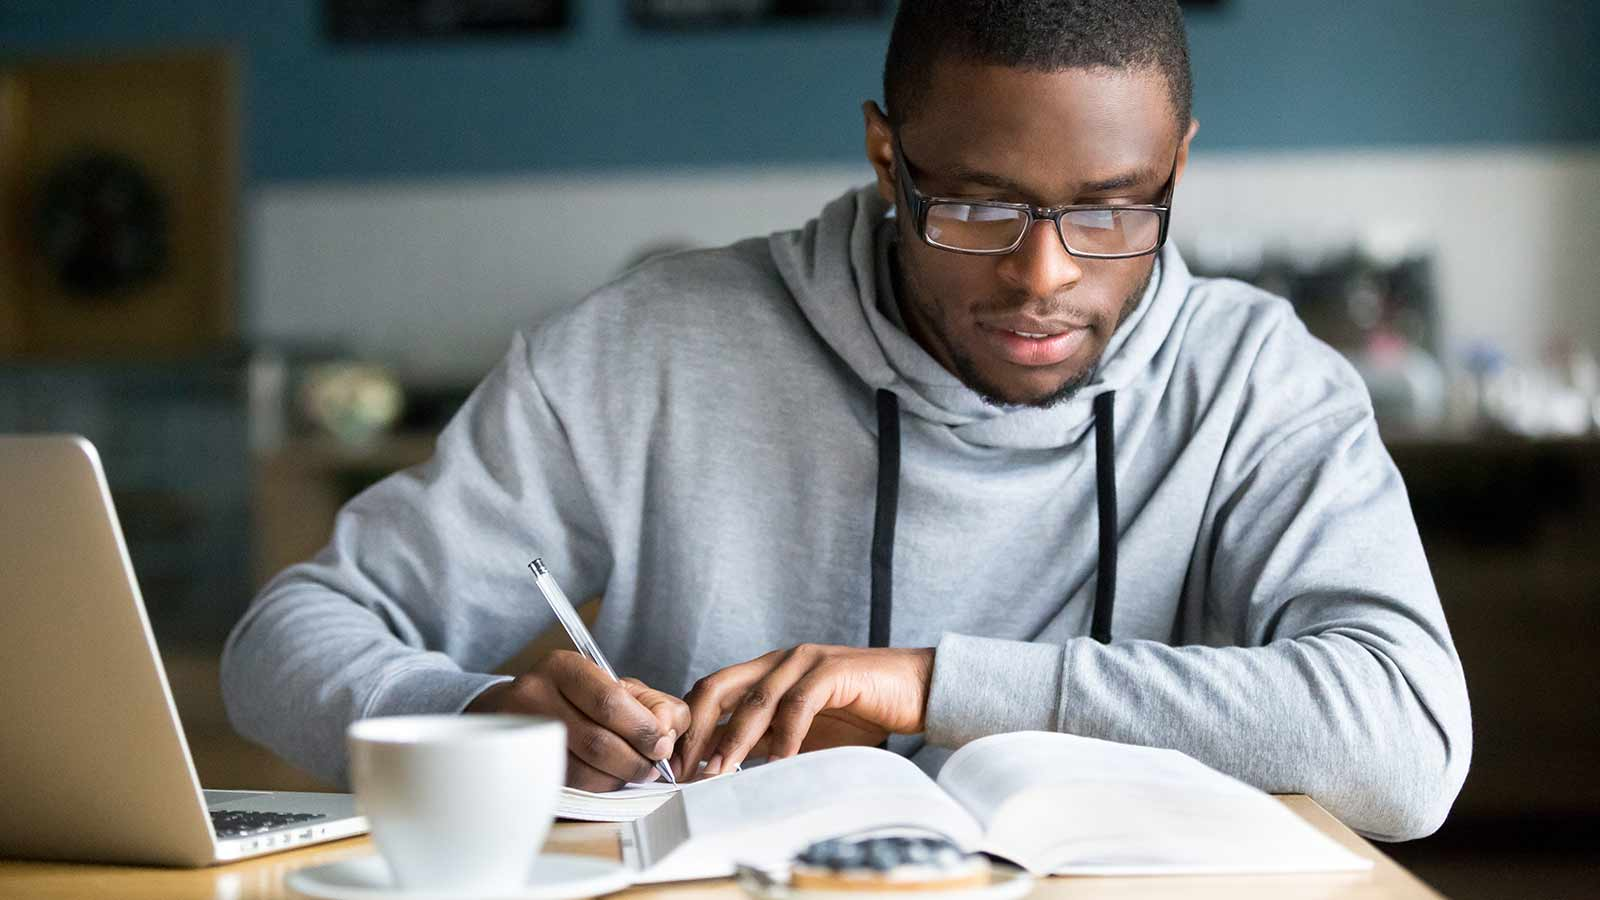 A young man studying and achieving his goals thanks to good planning and an excellent checklist.